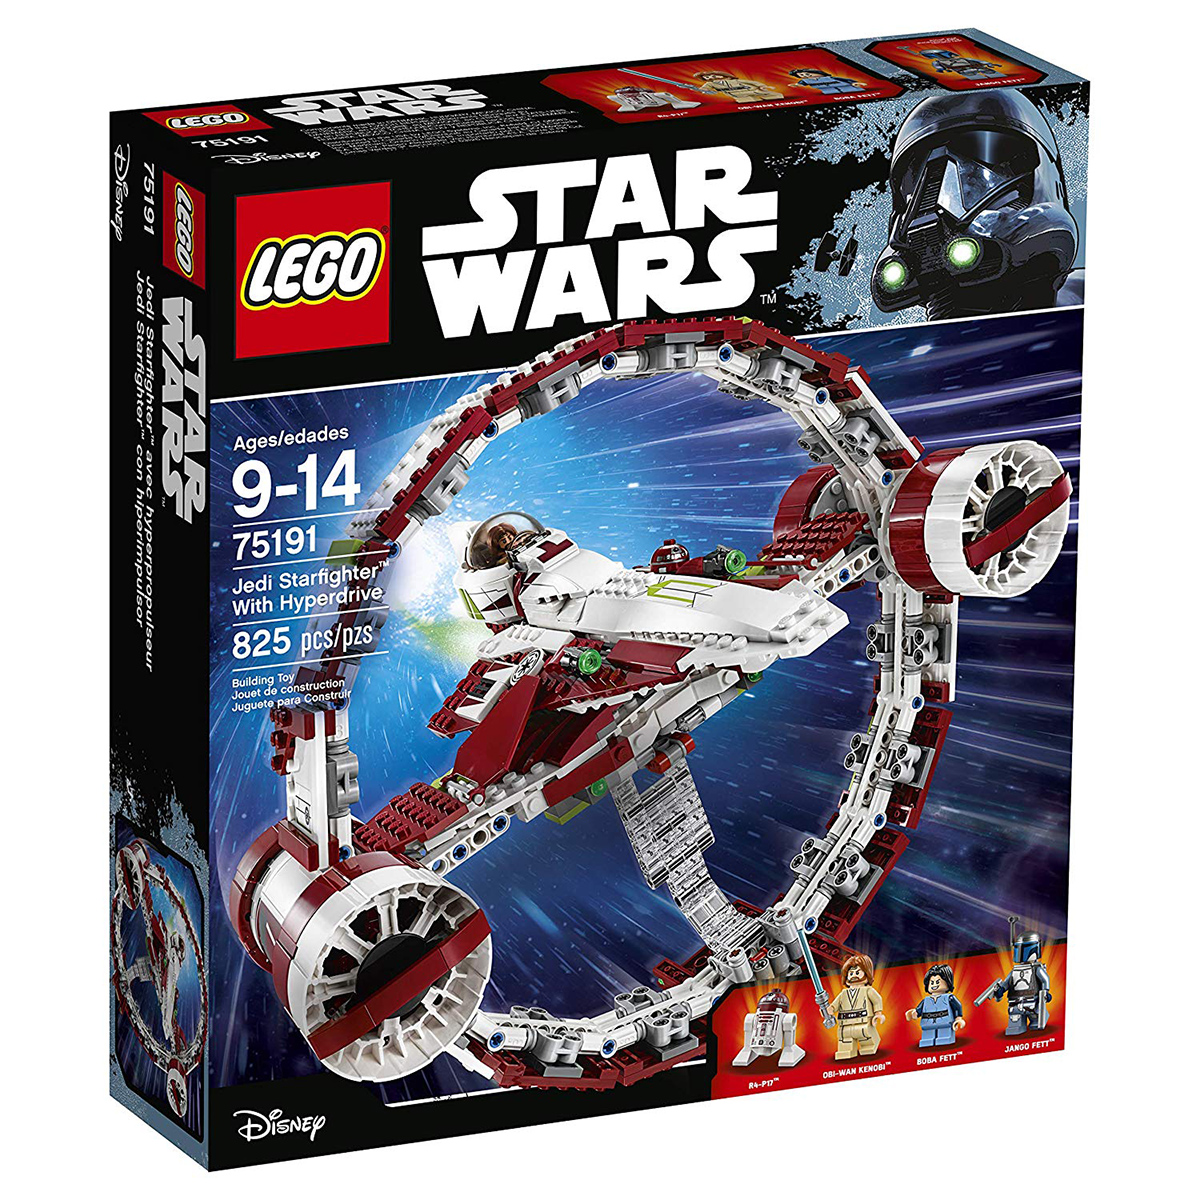 Star Wars™ 75191 Jedi Starfighter With Hyperdrive